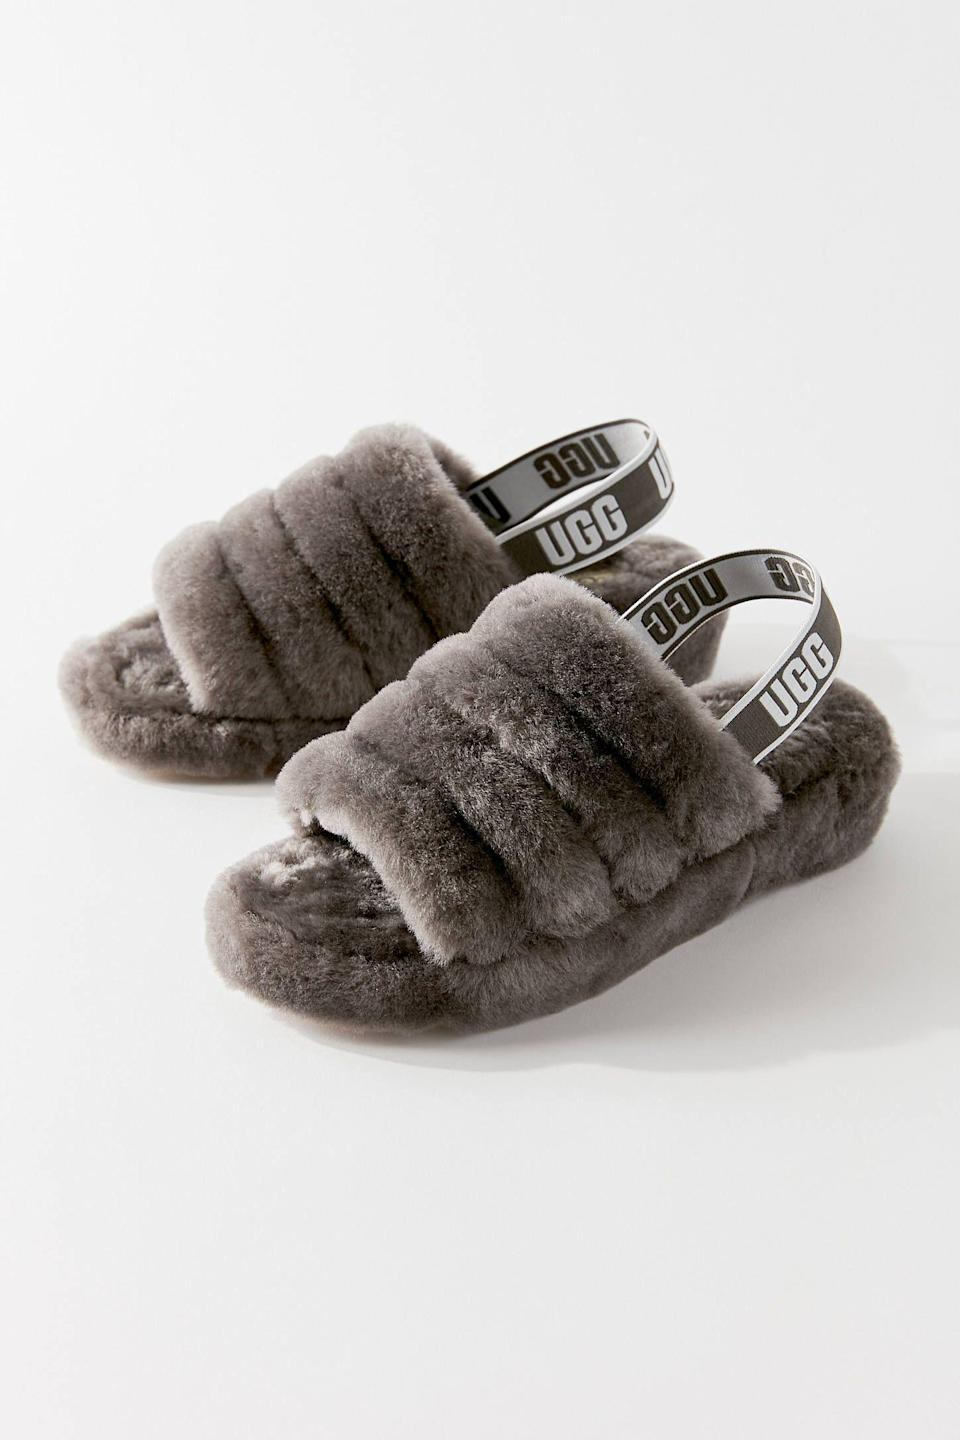 """<p><strong>Ugg</strong></p><p>amazon.com</p><p><a href=""""https://www.amazon.com/dp/B078VDKGKR?tag=syn-yahoo-20&ascsubtag=%5Bartid%7C10049.g.35017315%5Bsrc%7Cyahoo-us"""" rel=""""nofollow noopener"""" target=""""_blank"""" data-ylk=""""slk:Shop Now"""" class=""""link rapid-noclick-resp"""">Shop Now</a></p><p>Your feet will absolutely melt in these UGG slippers that have become *the* footwear of quarantine. </p>"""